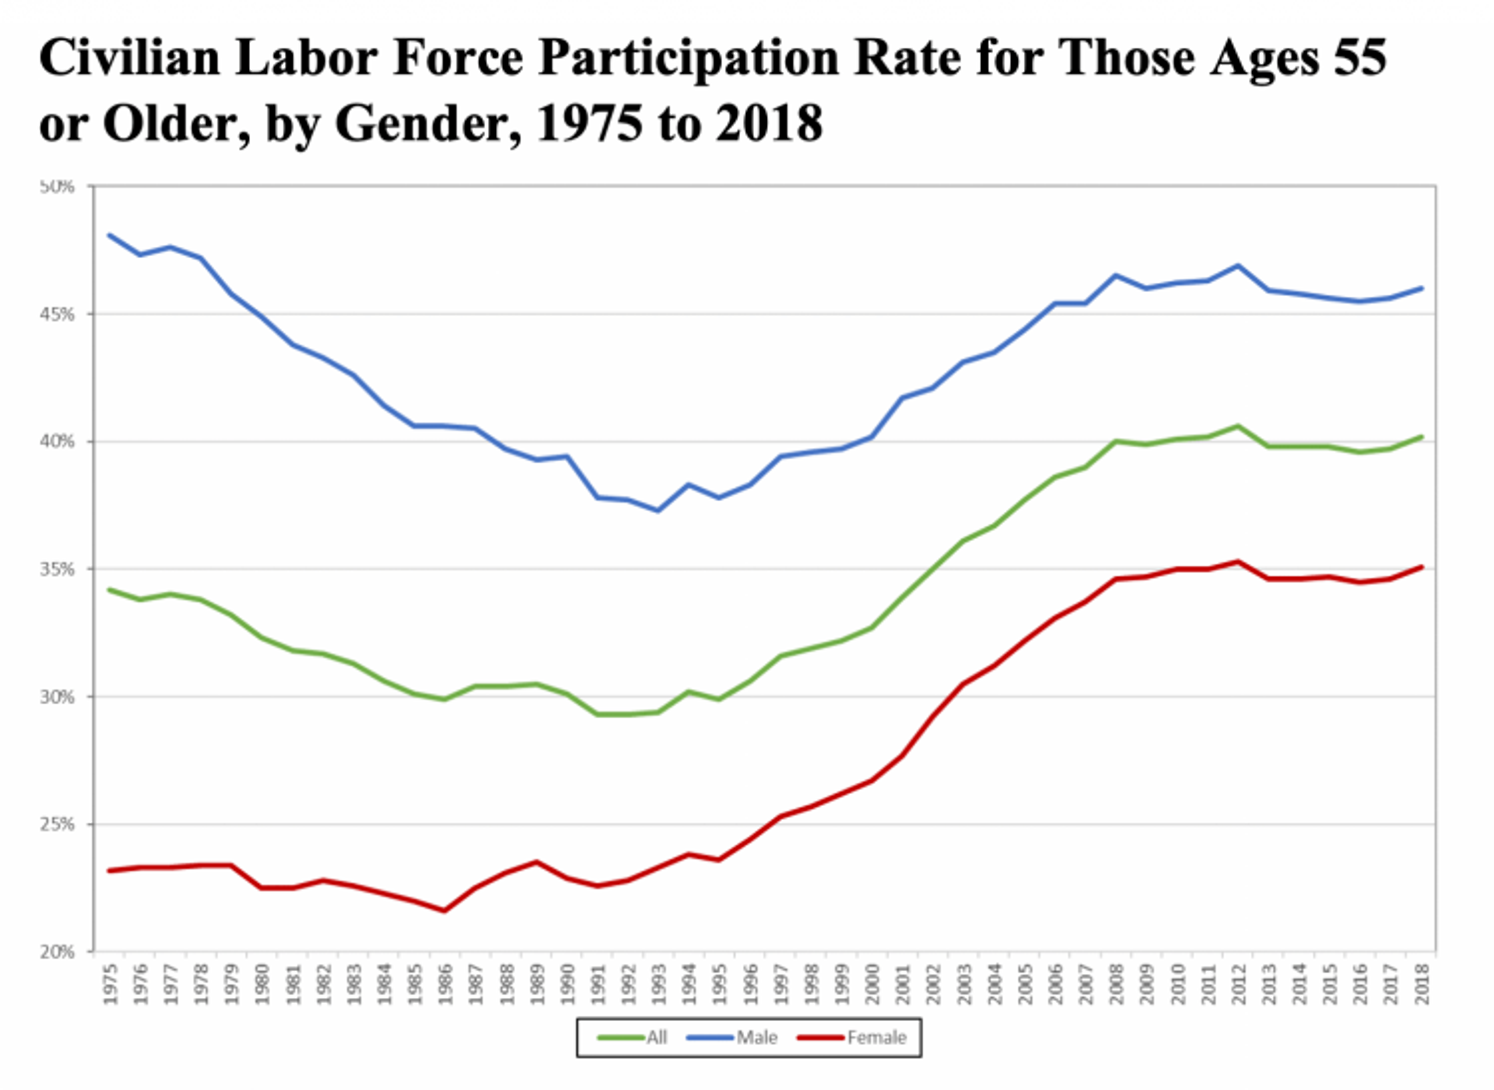 Civilian Labor Force Participation Rate for Those Ages 55 or Older, by Gender, 1975 to 2018